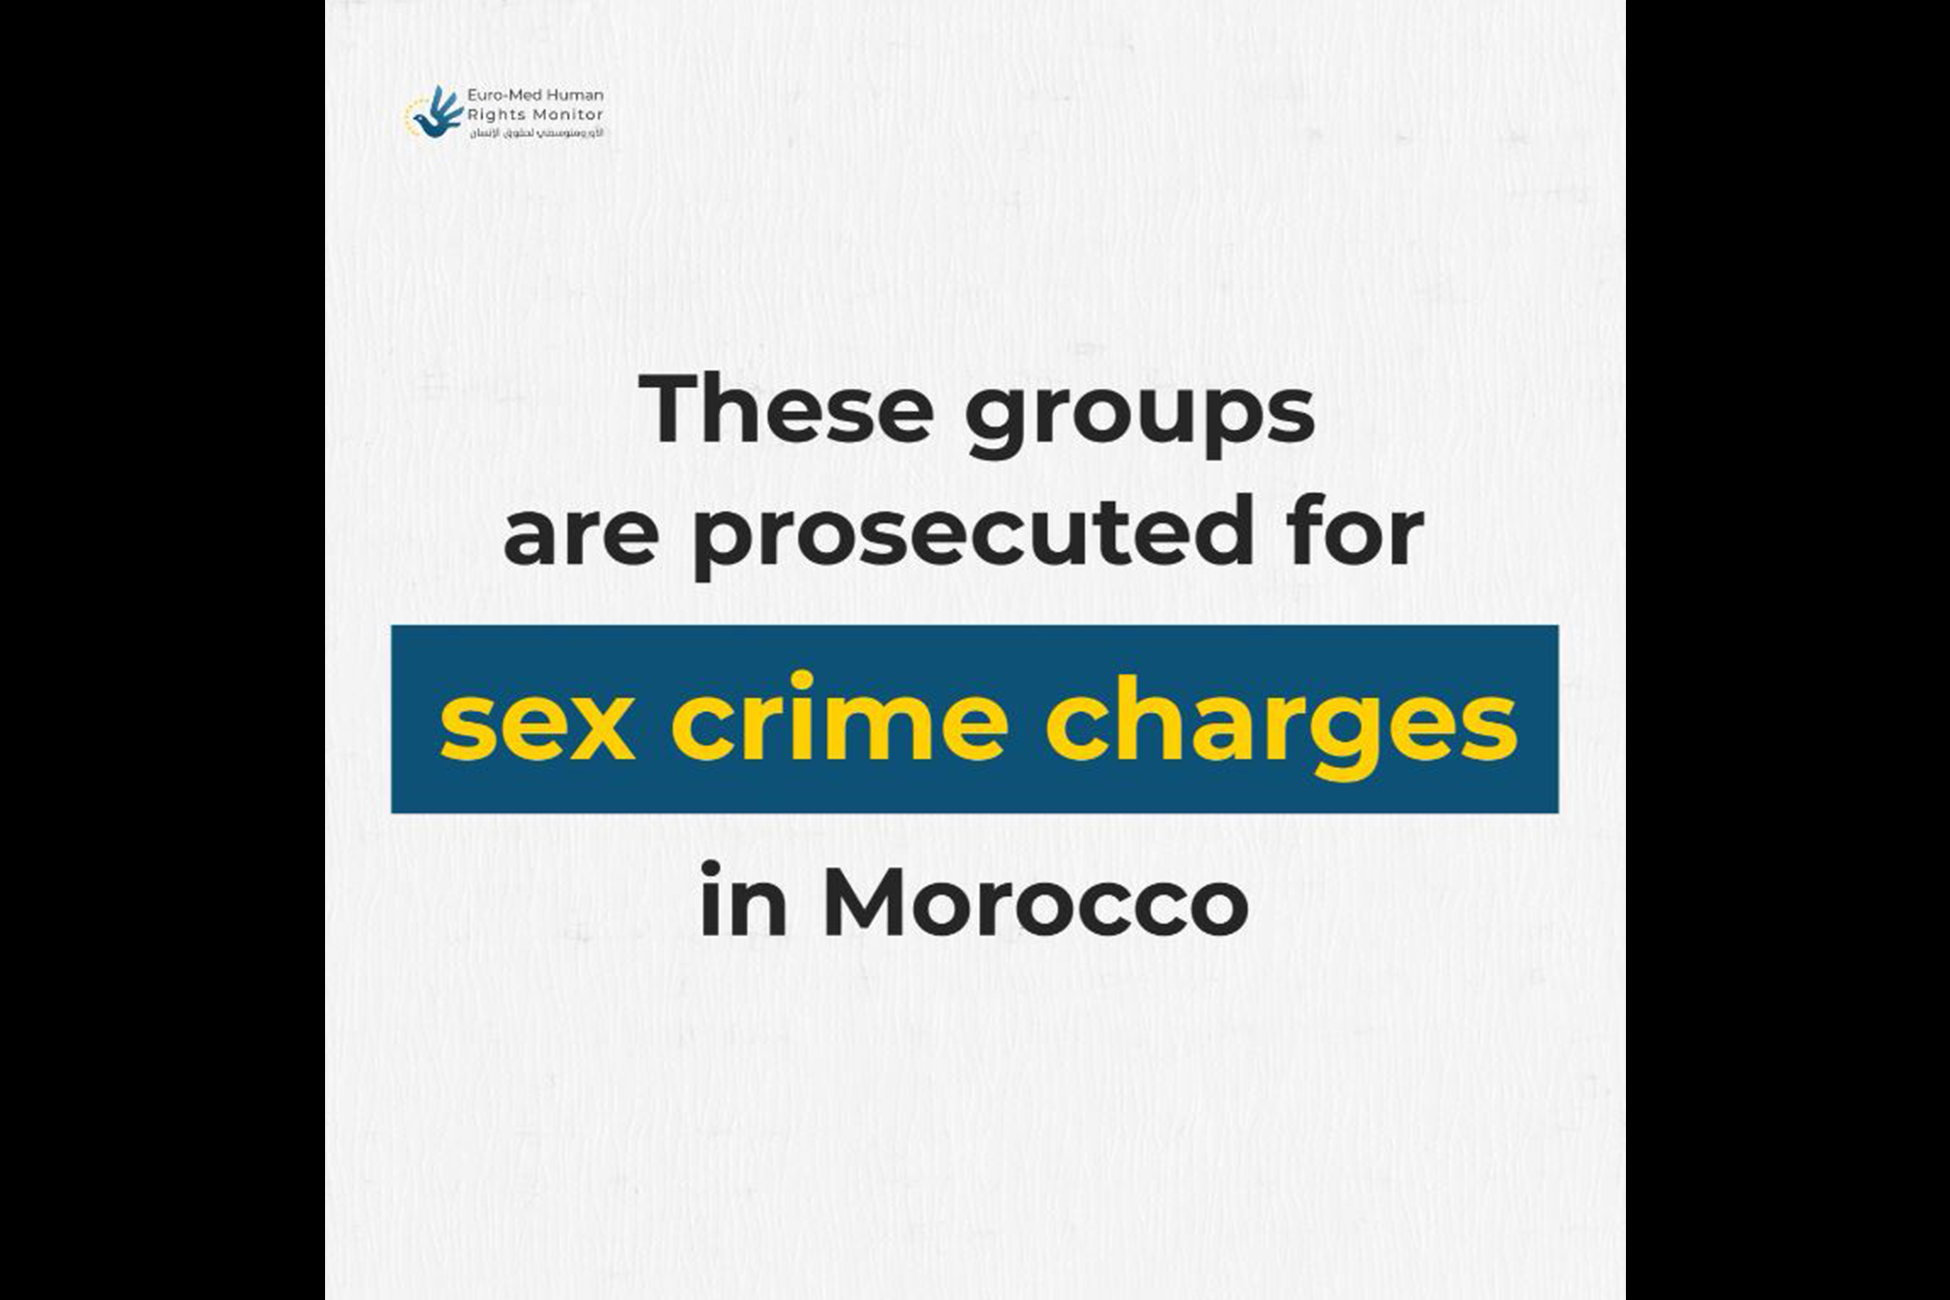 Sex crime charges in Morocco